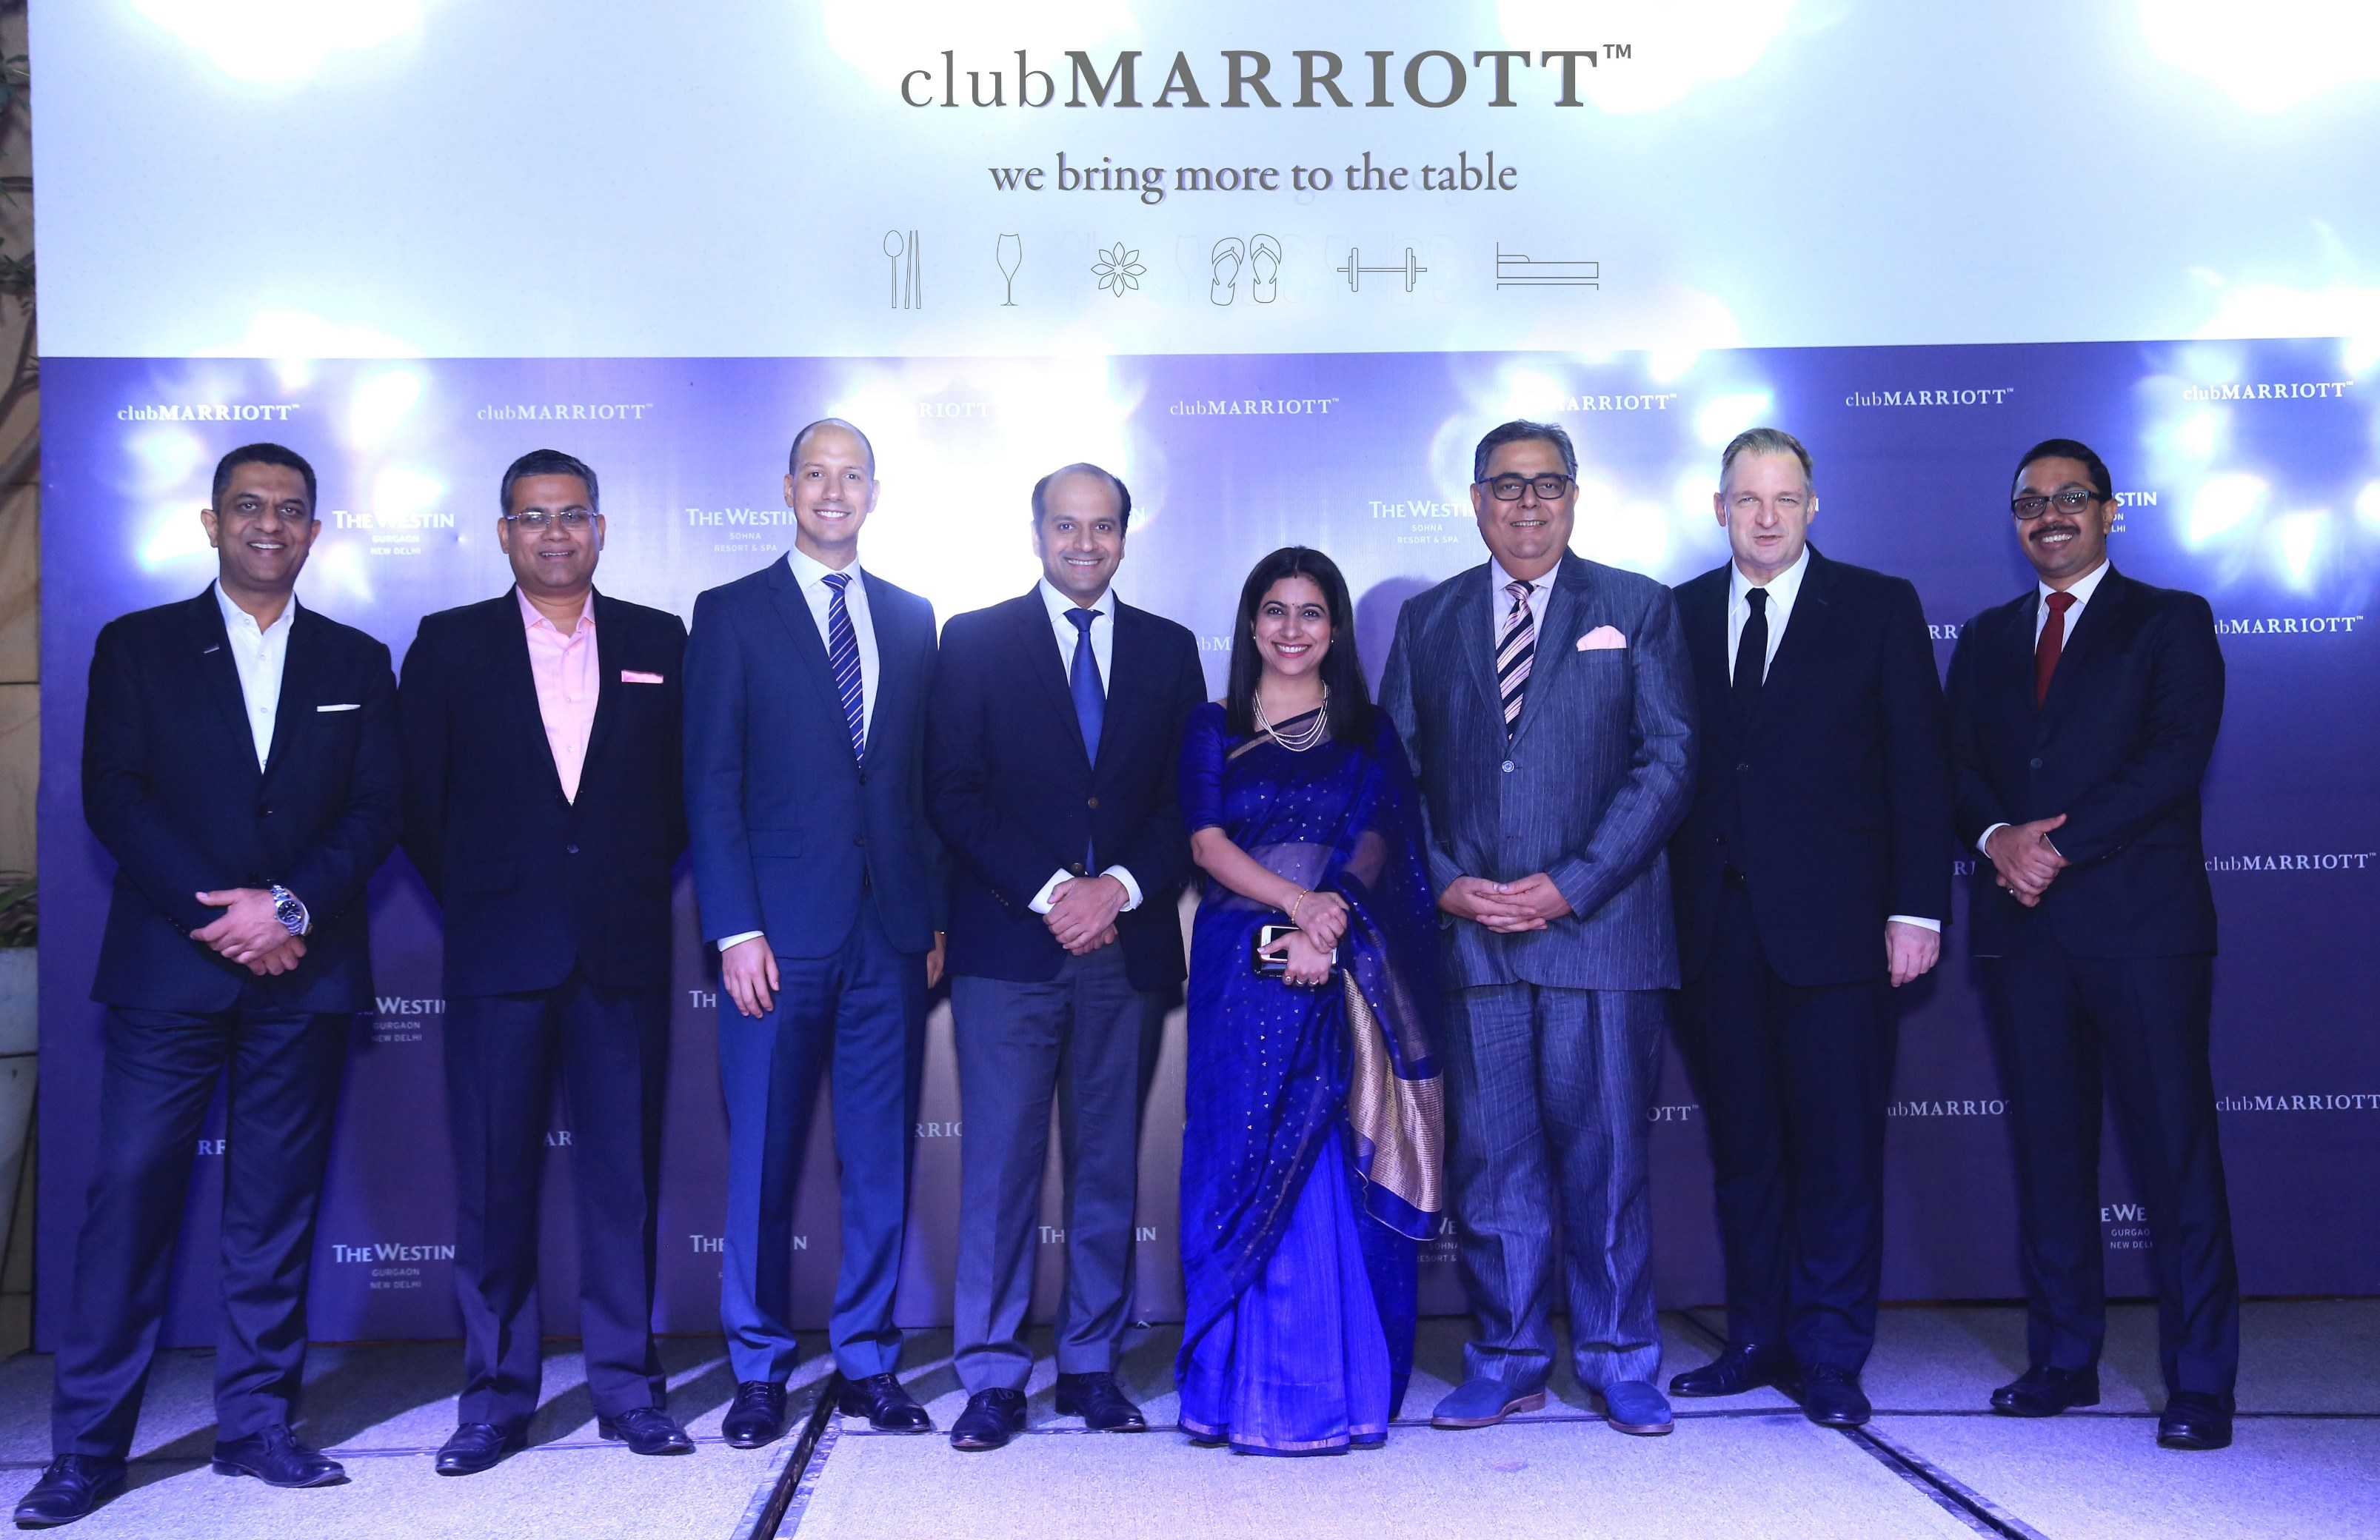 Marriott International (NASDAQ: MAR) has launched the new Club Marriott in India, a leading dining loyalty program that integrates three powerful dining loyalty programs—Club Marriott, Eat Drink & More, and Star Privilege—into a single paid membership program.